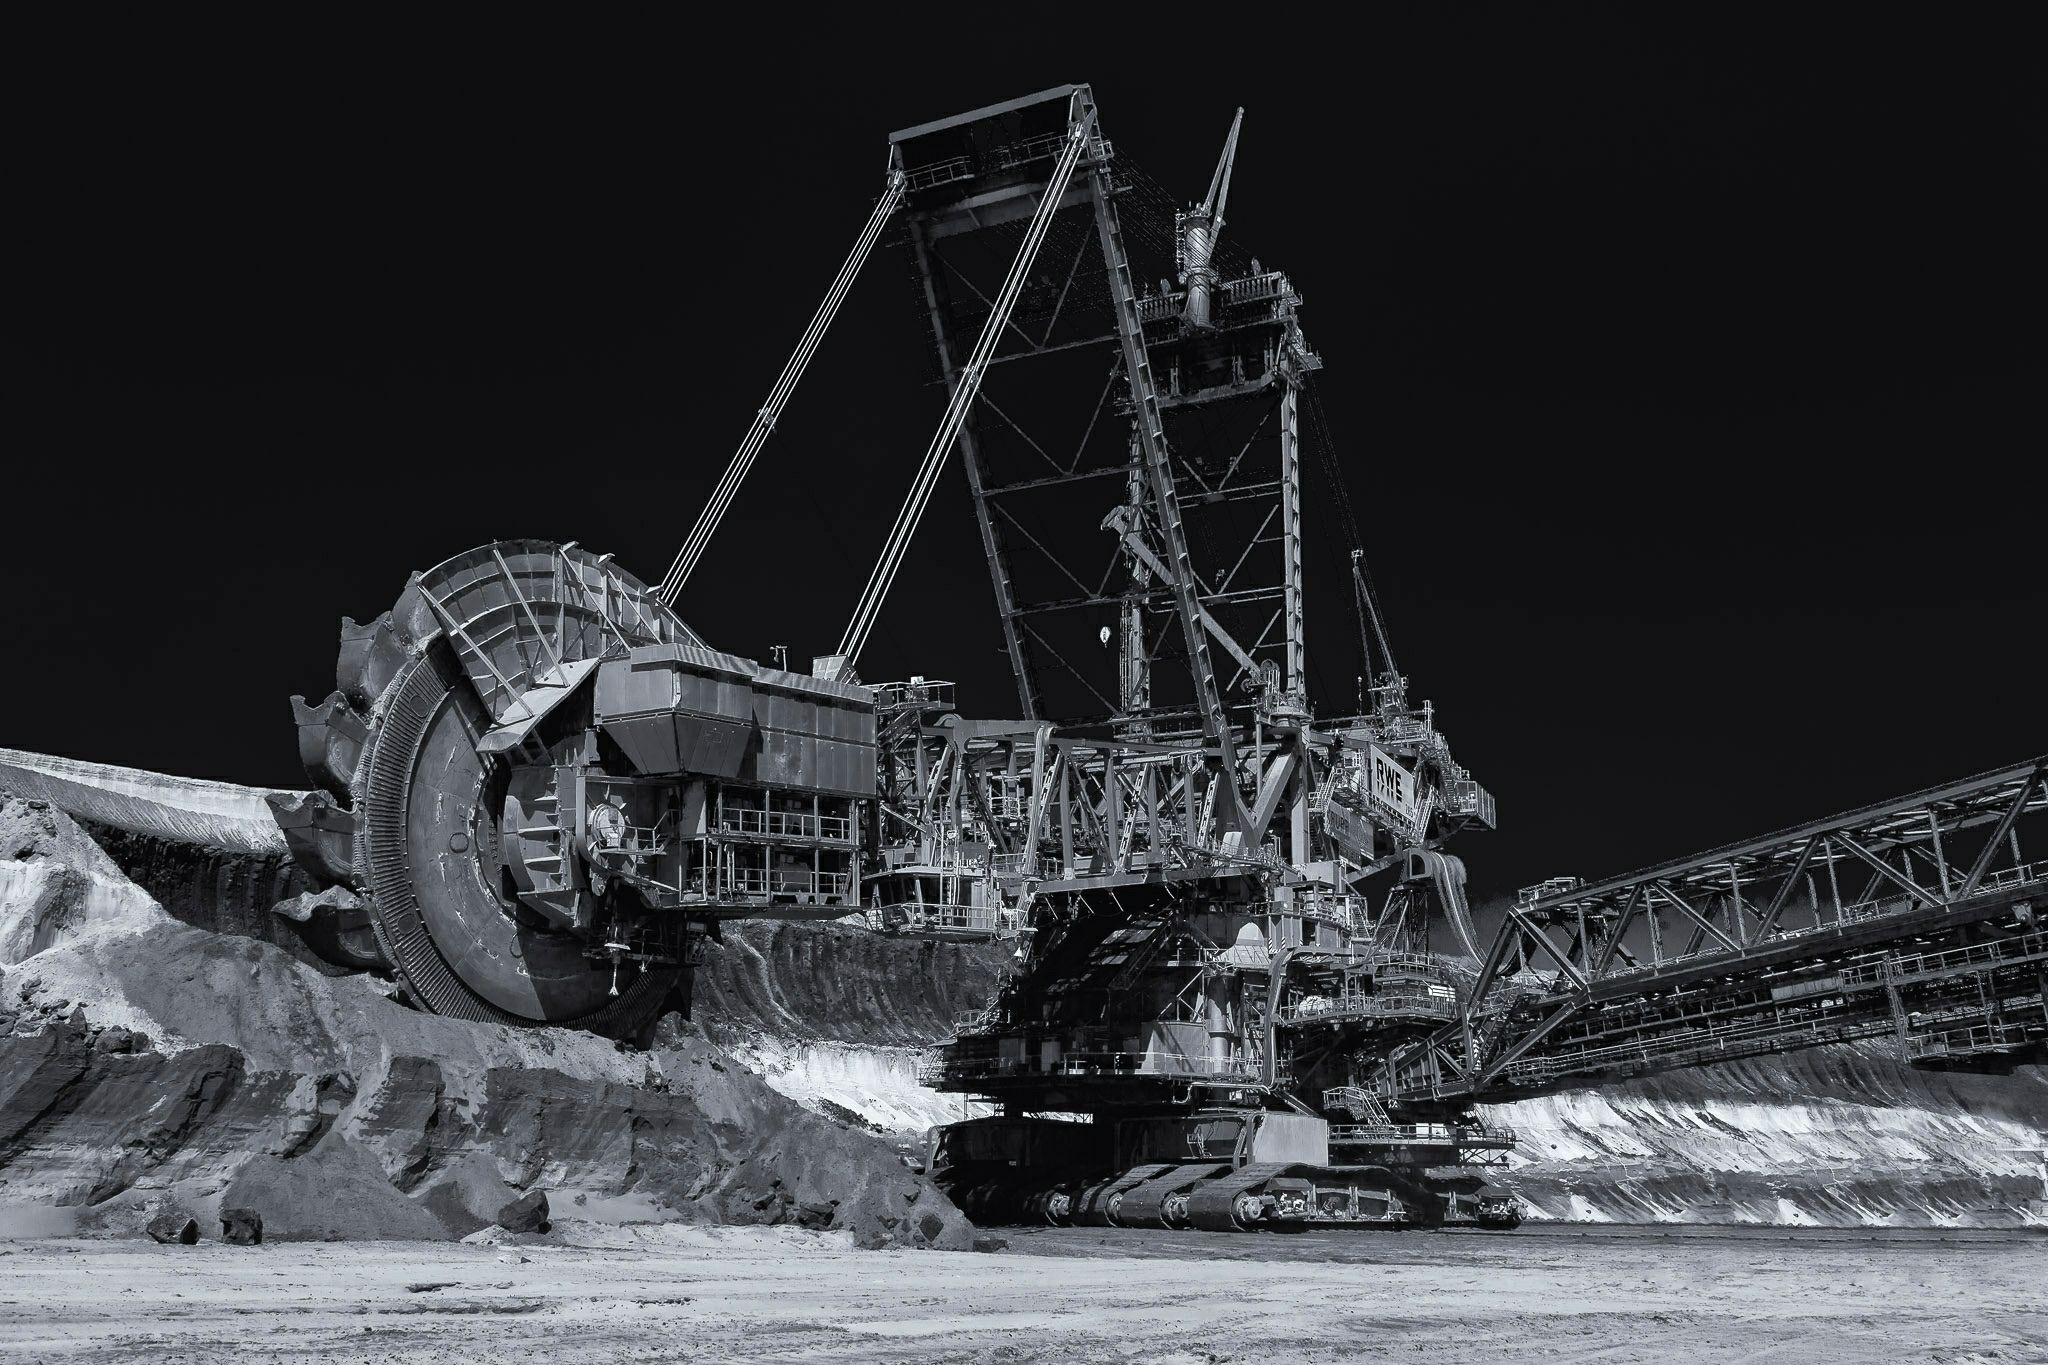 https://flic.kr/p/dHvLej | gentle giant | Partial view of a behemoth bucket-wheel excavator eating up the lignite strata at Garzweiler II open-cast mine, Germany.